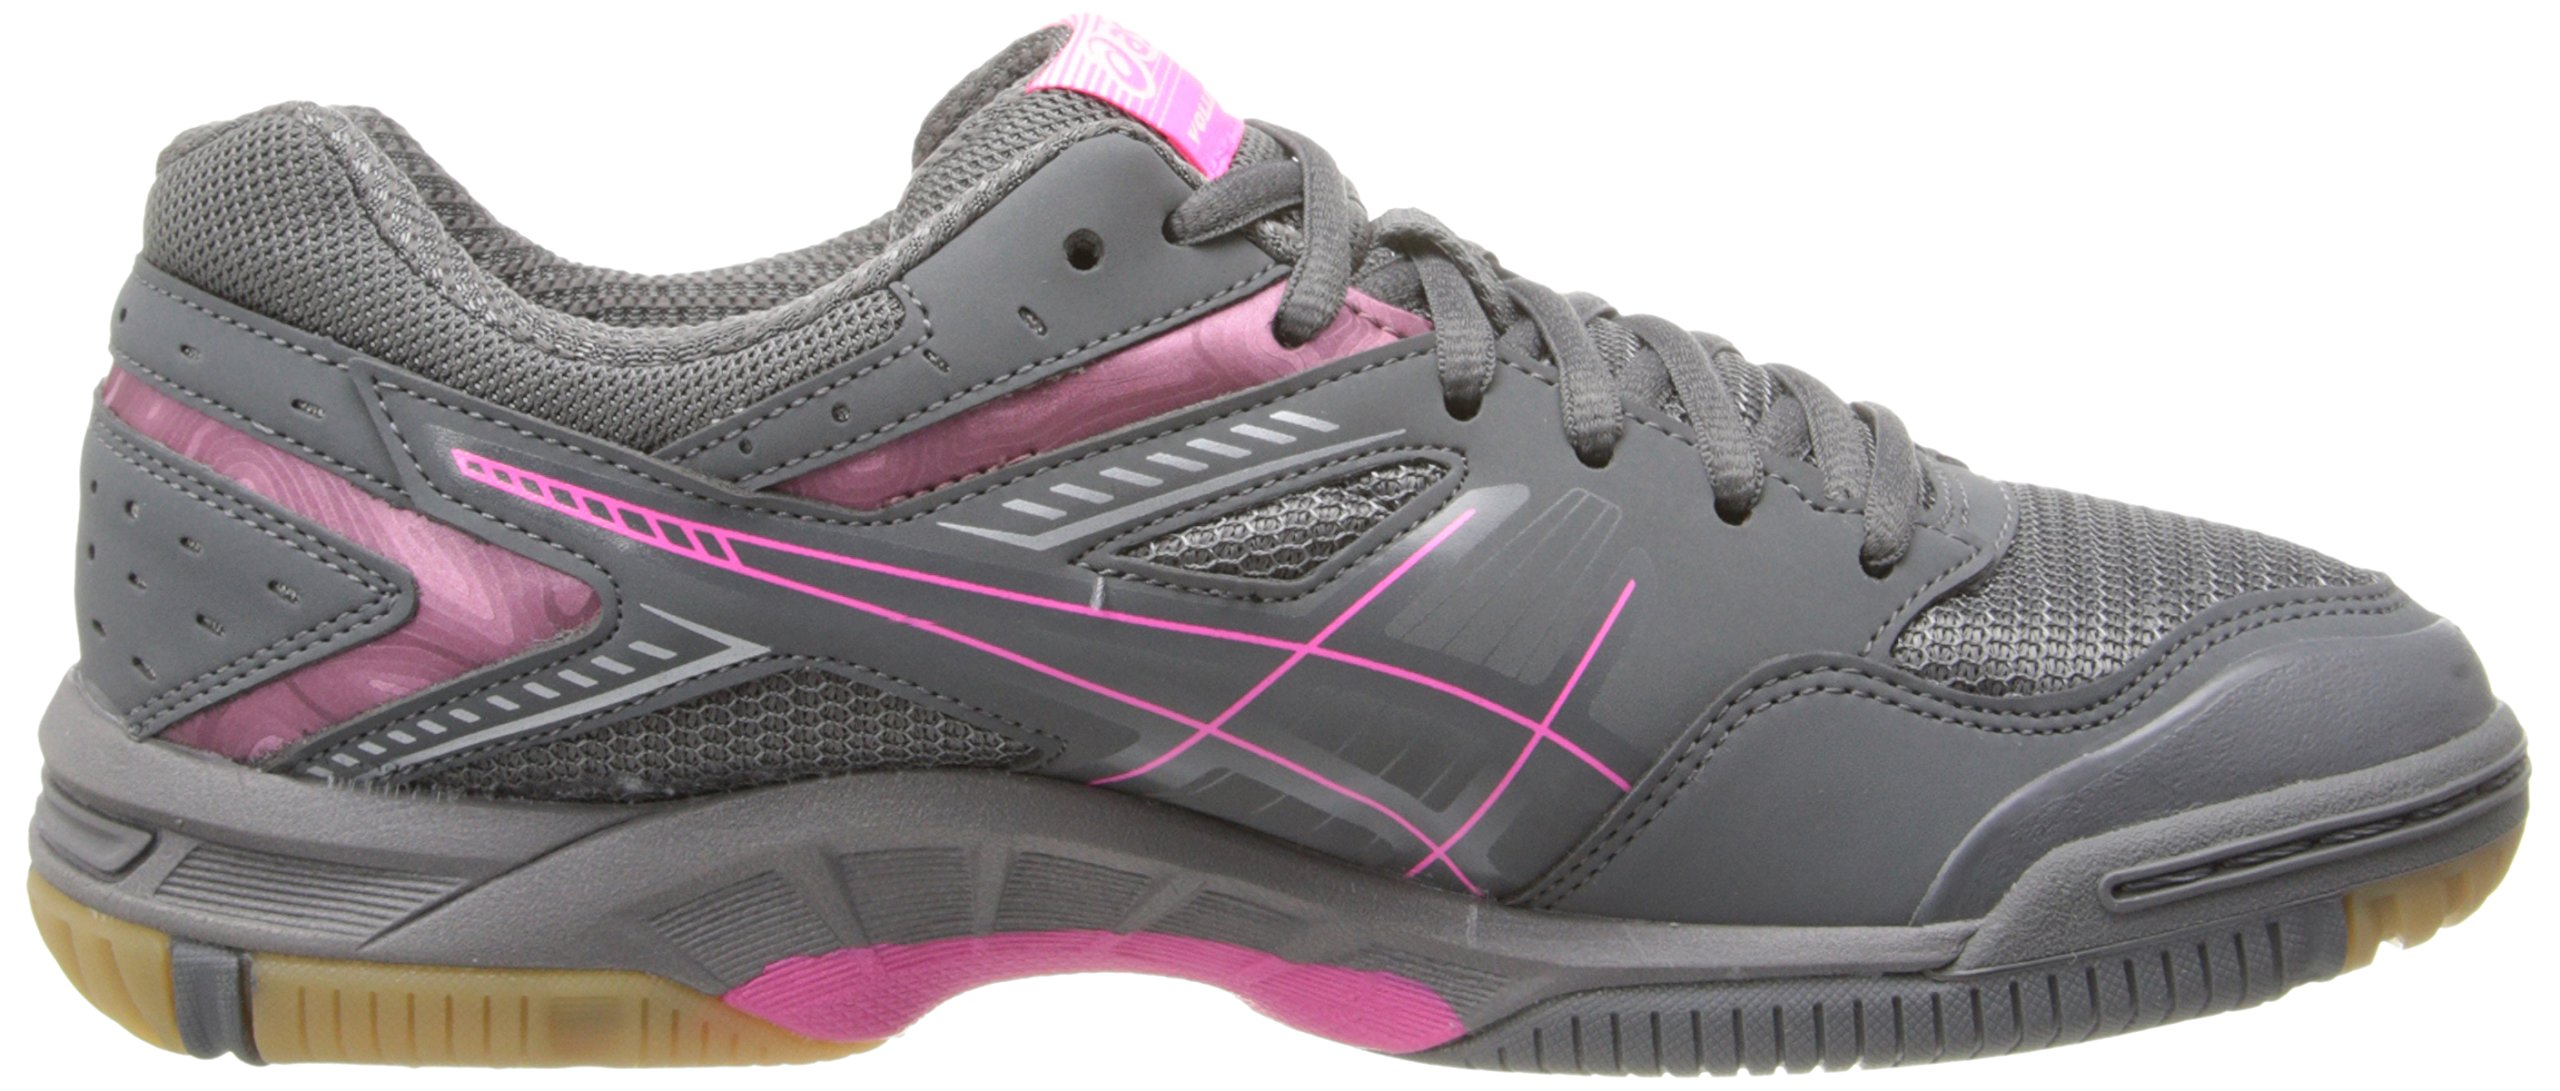 ASICS Women's Gel 1150V Volley Ball Shoe,Smoke/Knock Out Pink/Silver,8 M US by ASICS (Image #7)